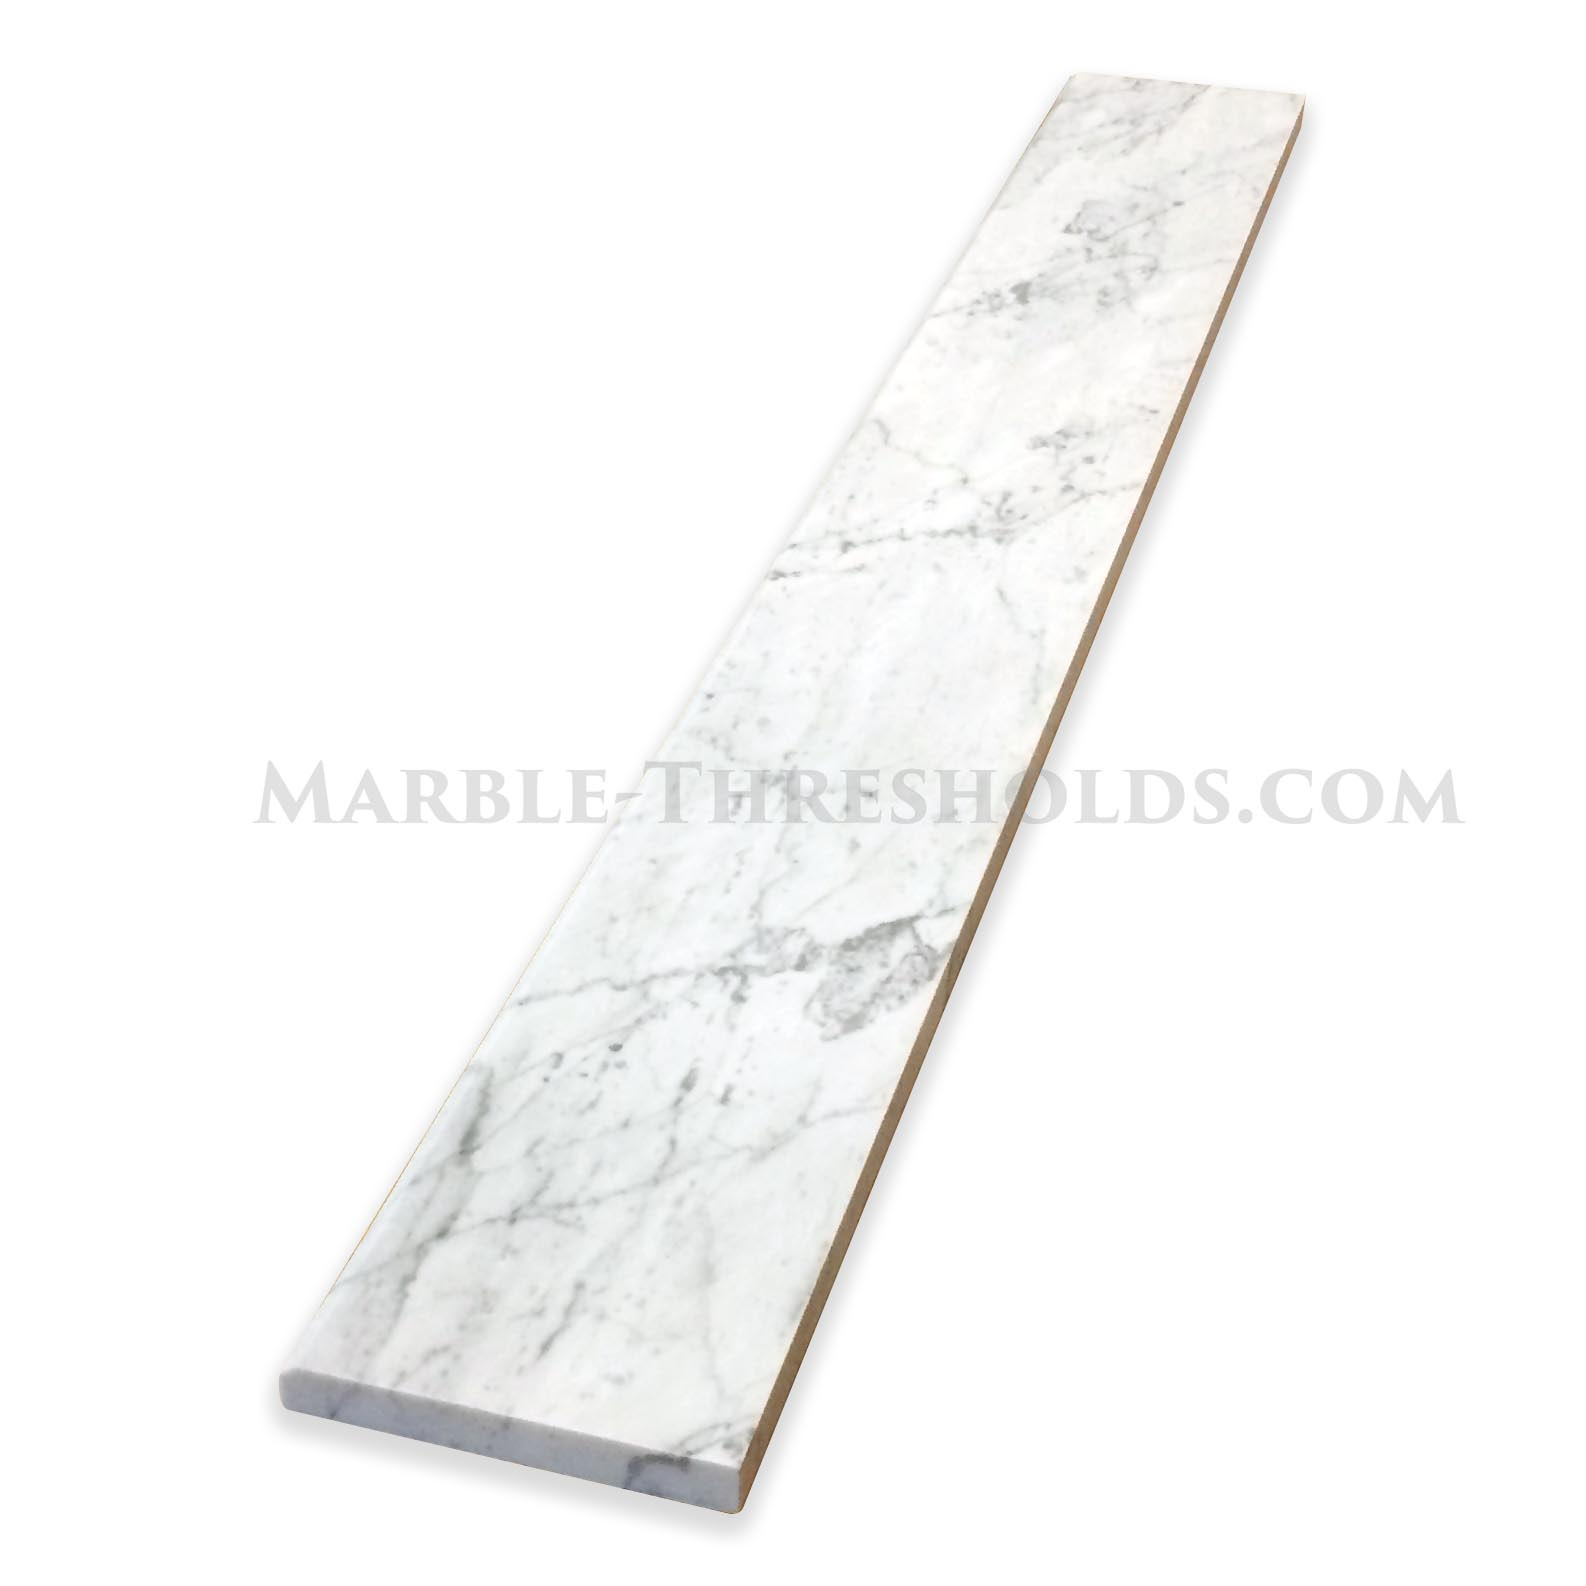 Carrara White Marble Window Sills Size X X Inch - 36 inch marble tile